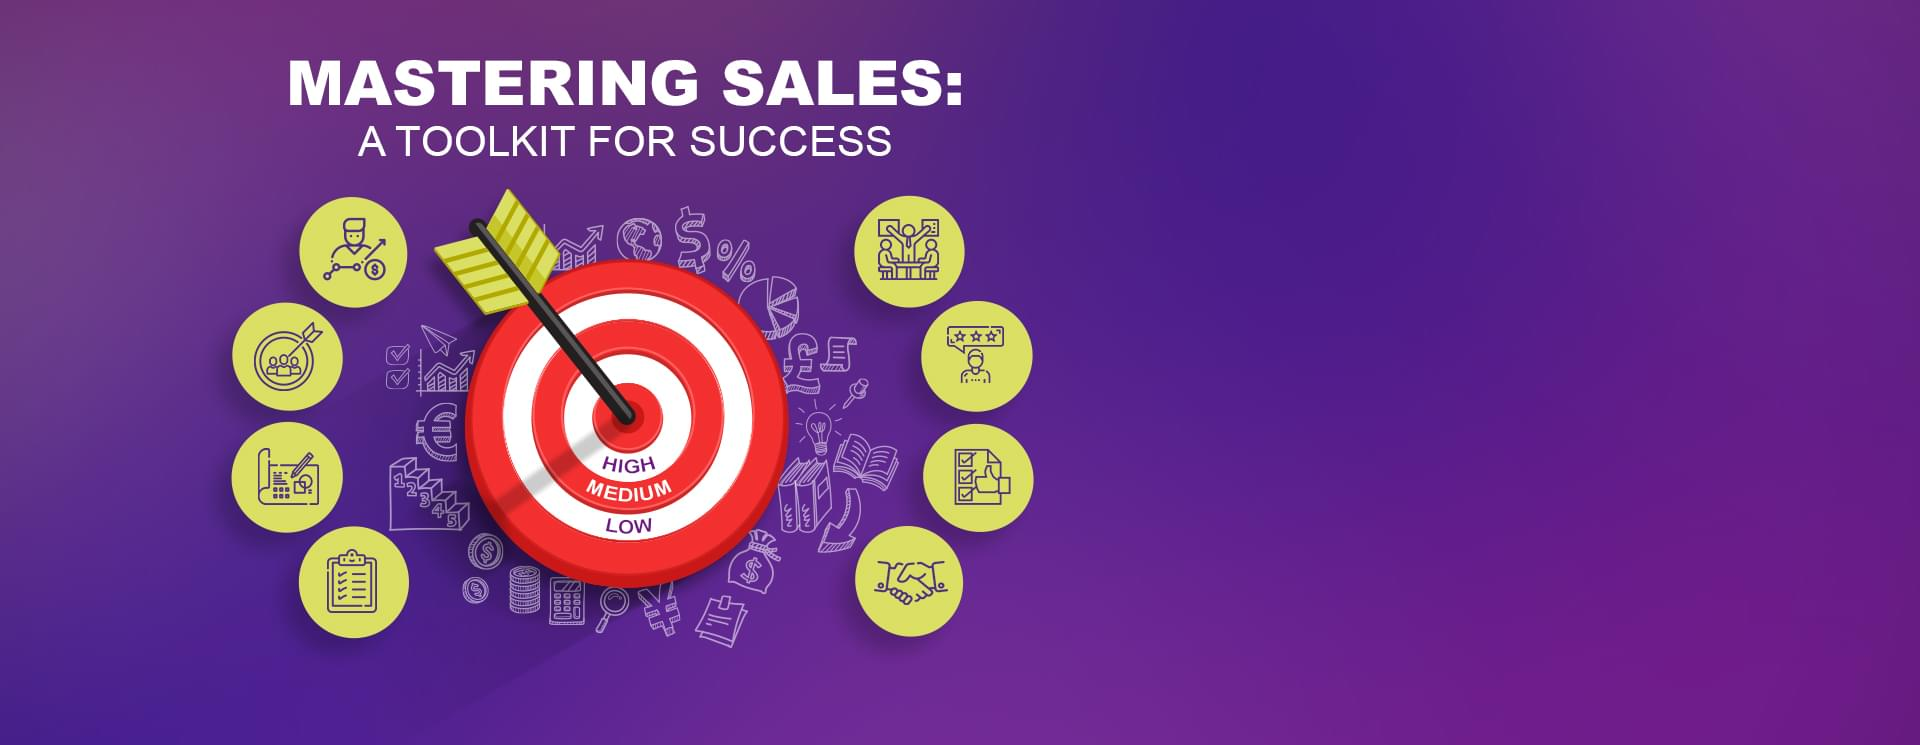 Mastering Sales: A Toolkit for Success